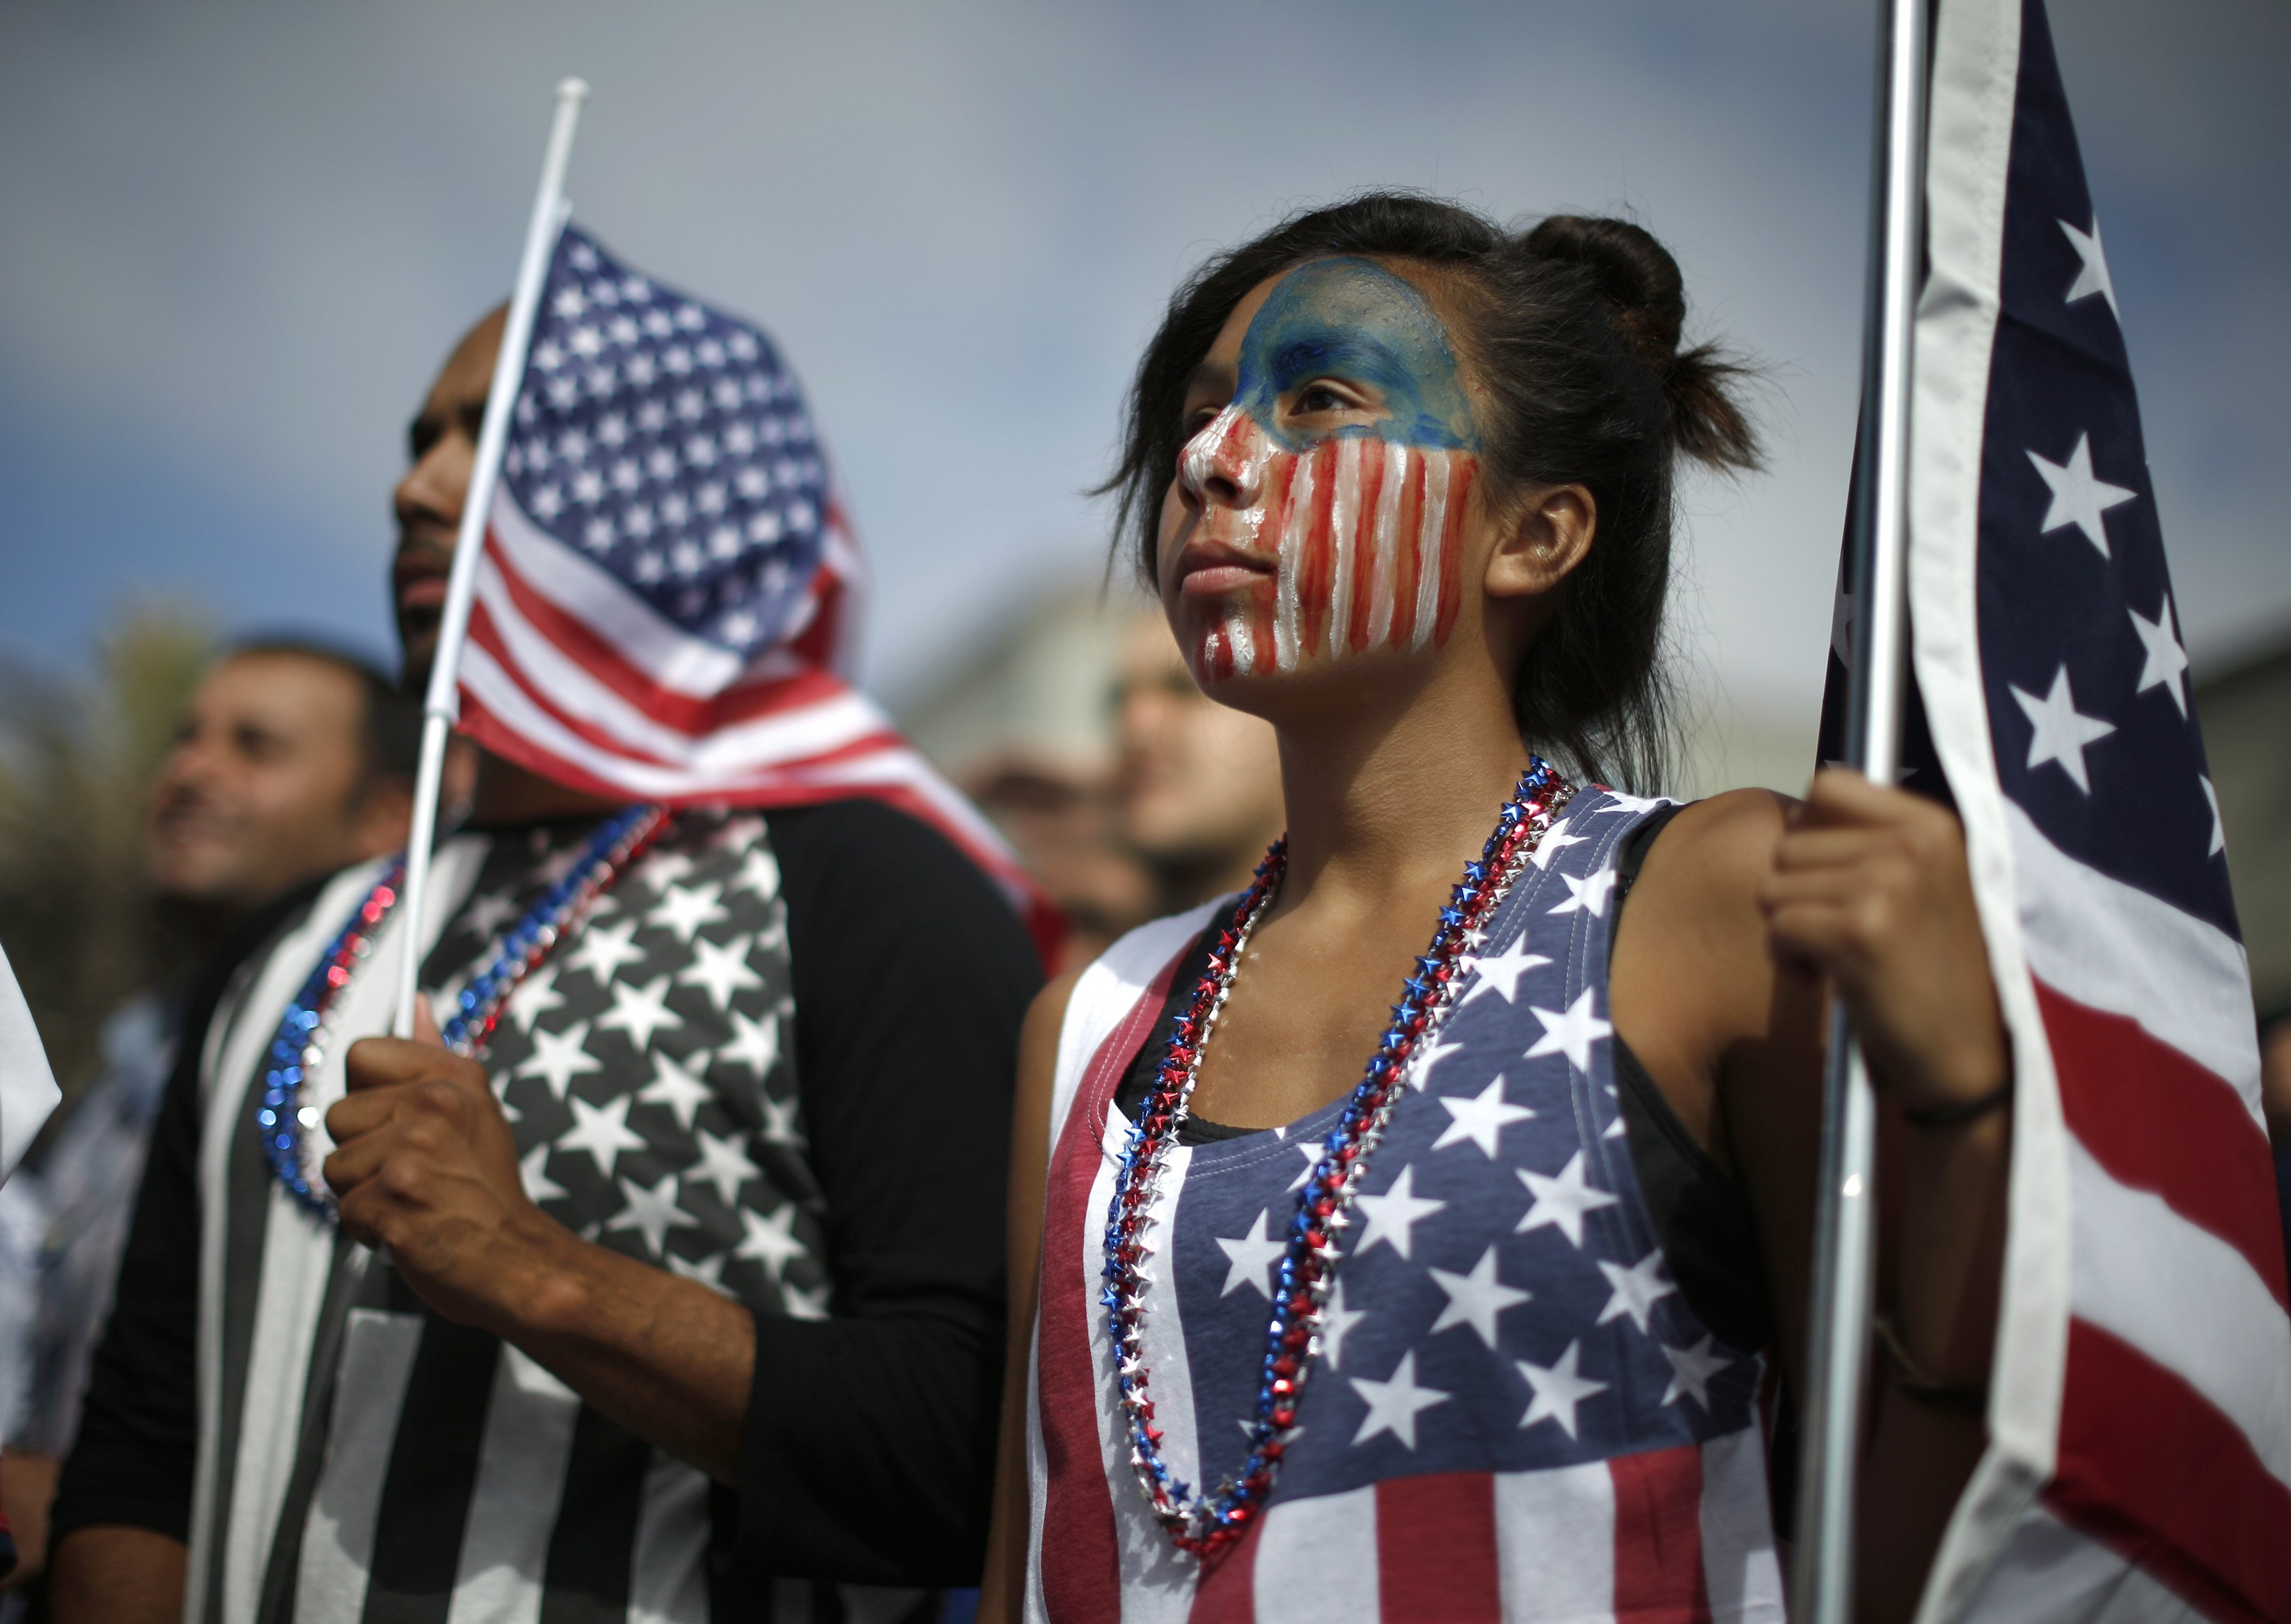 Michelle Lopez, 14, (R) watches the 2014 Brazil World Cup soccer match between Ghana and the U.S. at a viewing party in Hermosa Beach, Cailf. on June 16, 2014.